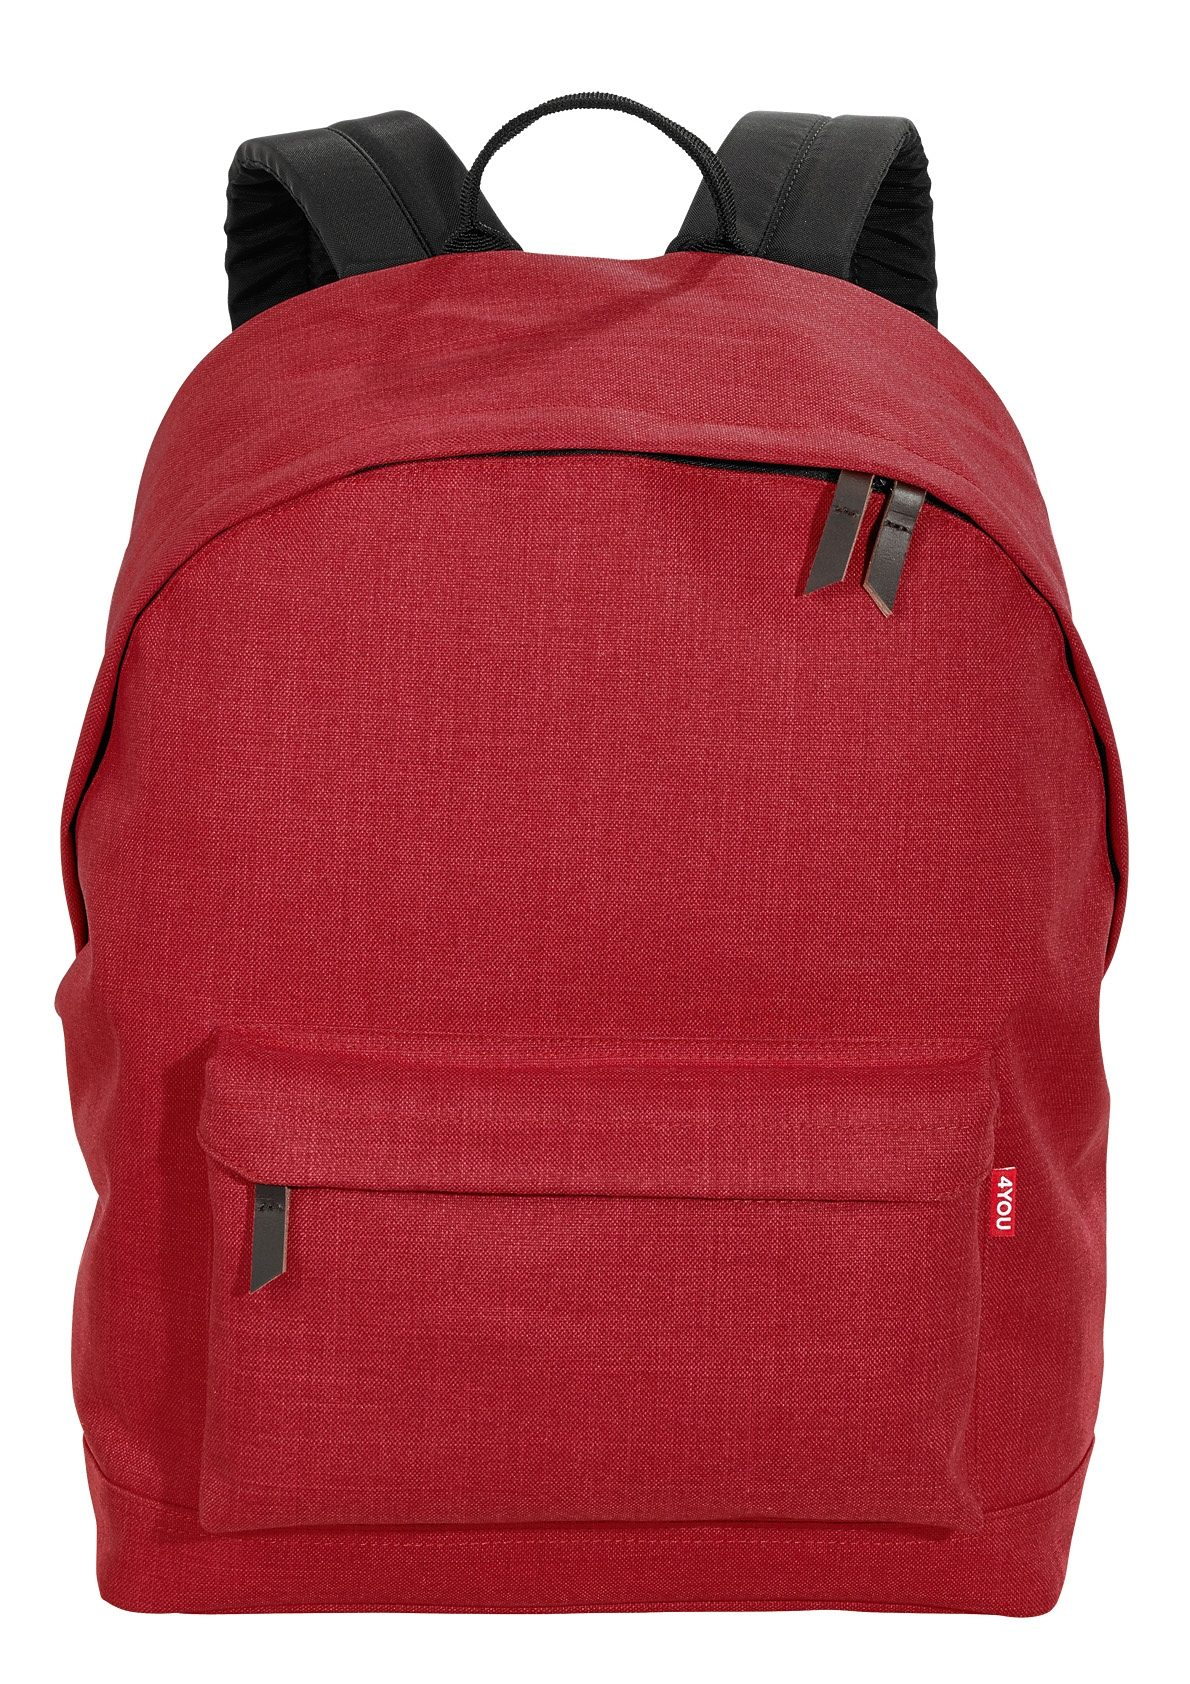 4YOU Rucksack, Soft Red, »Daypack«